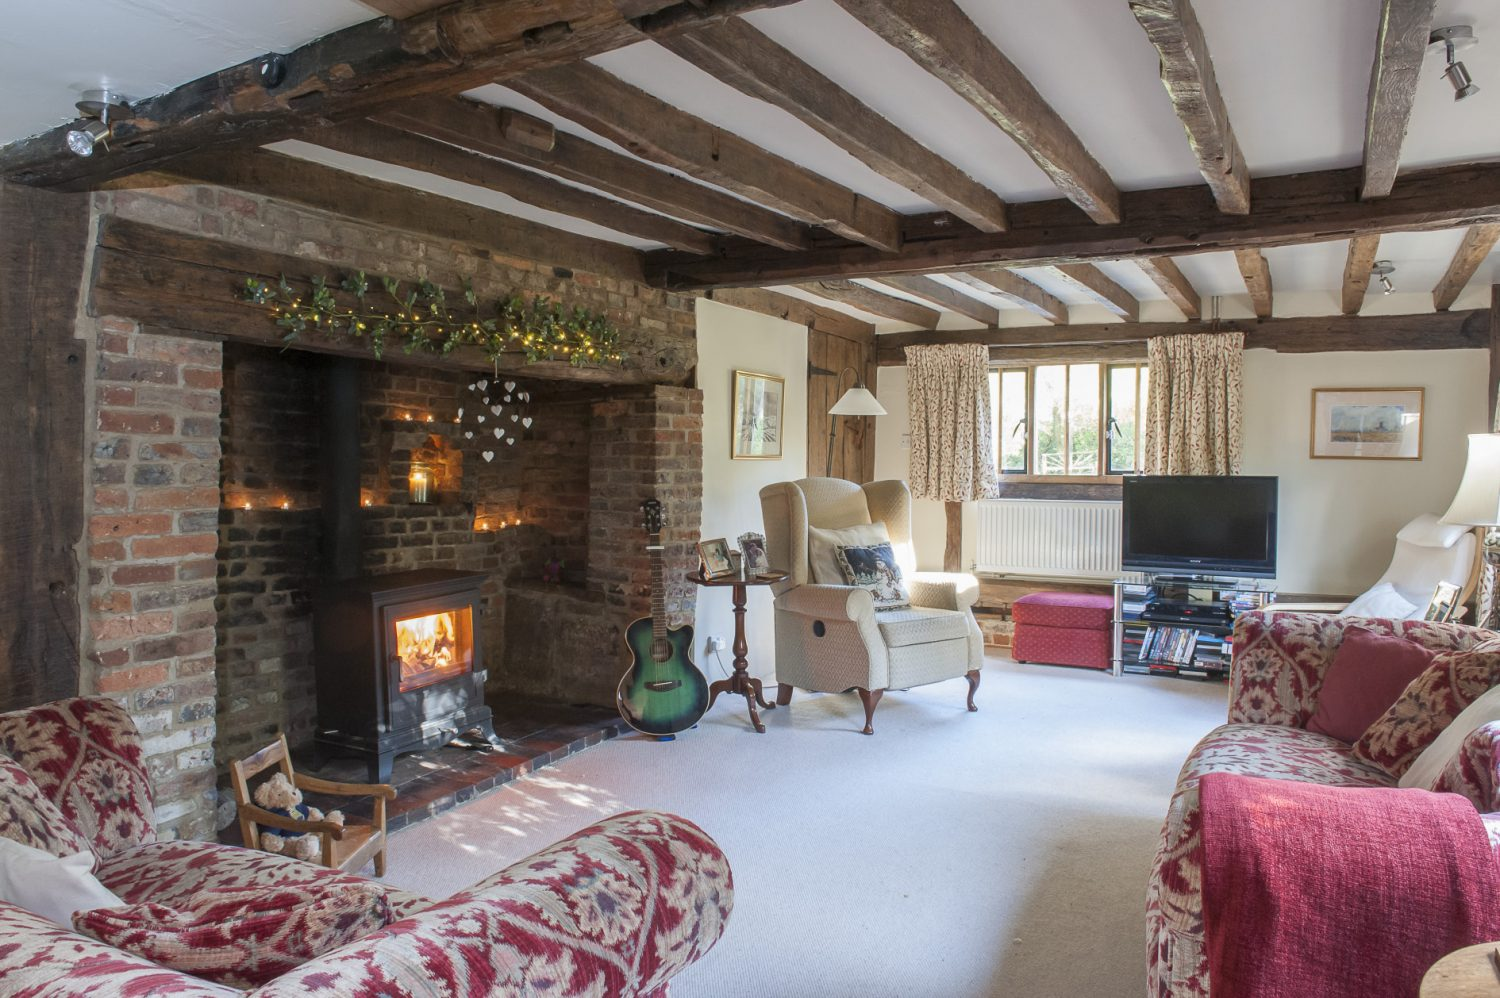 In the sitting room, the second inglenook fireplace shows clearly where the floor has been lowered. Two comfortable tapestry sofas in rich plum tones, complement delicately patterned curtains made by Bell House Fabrics